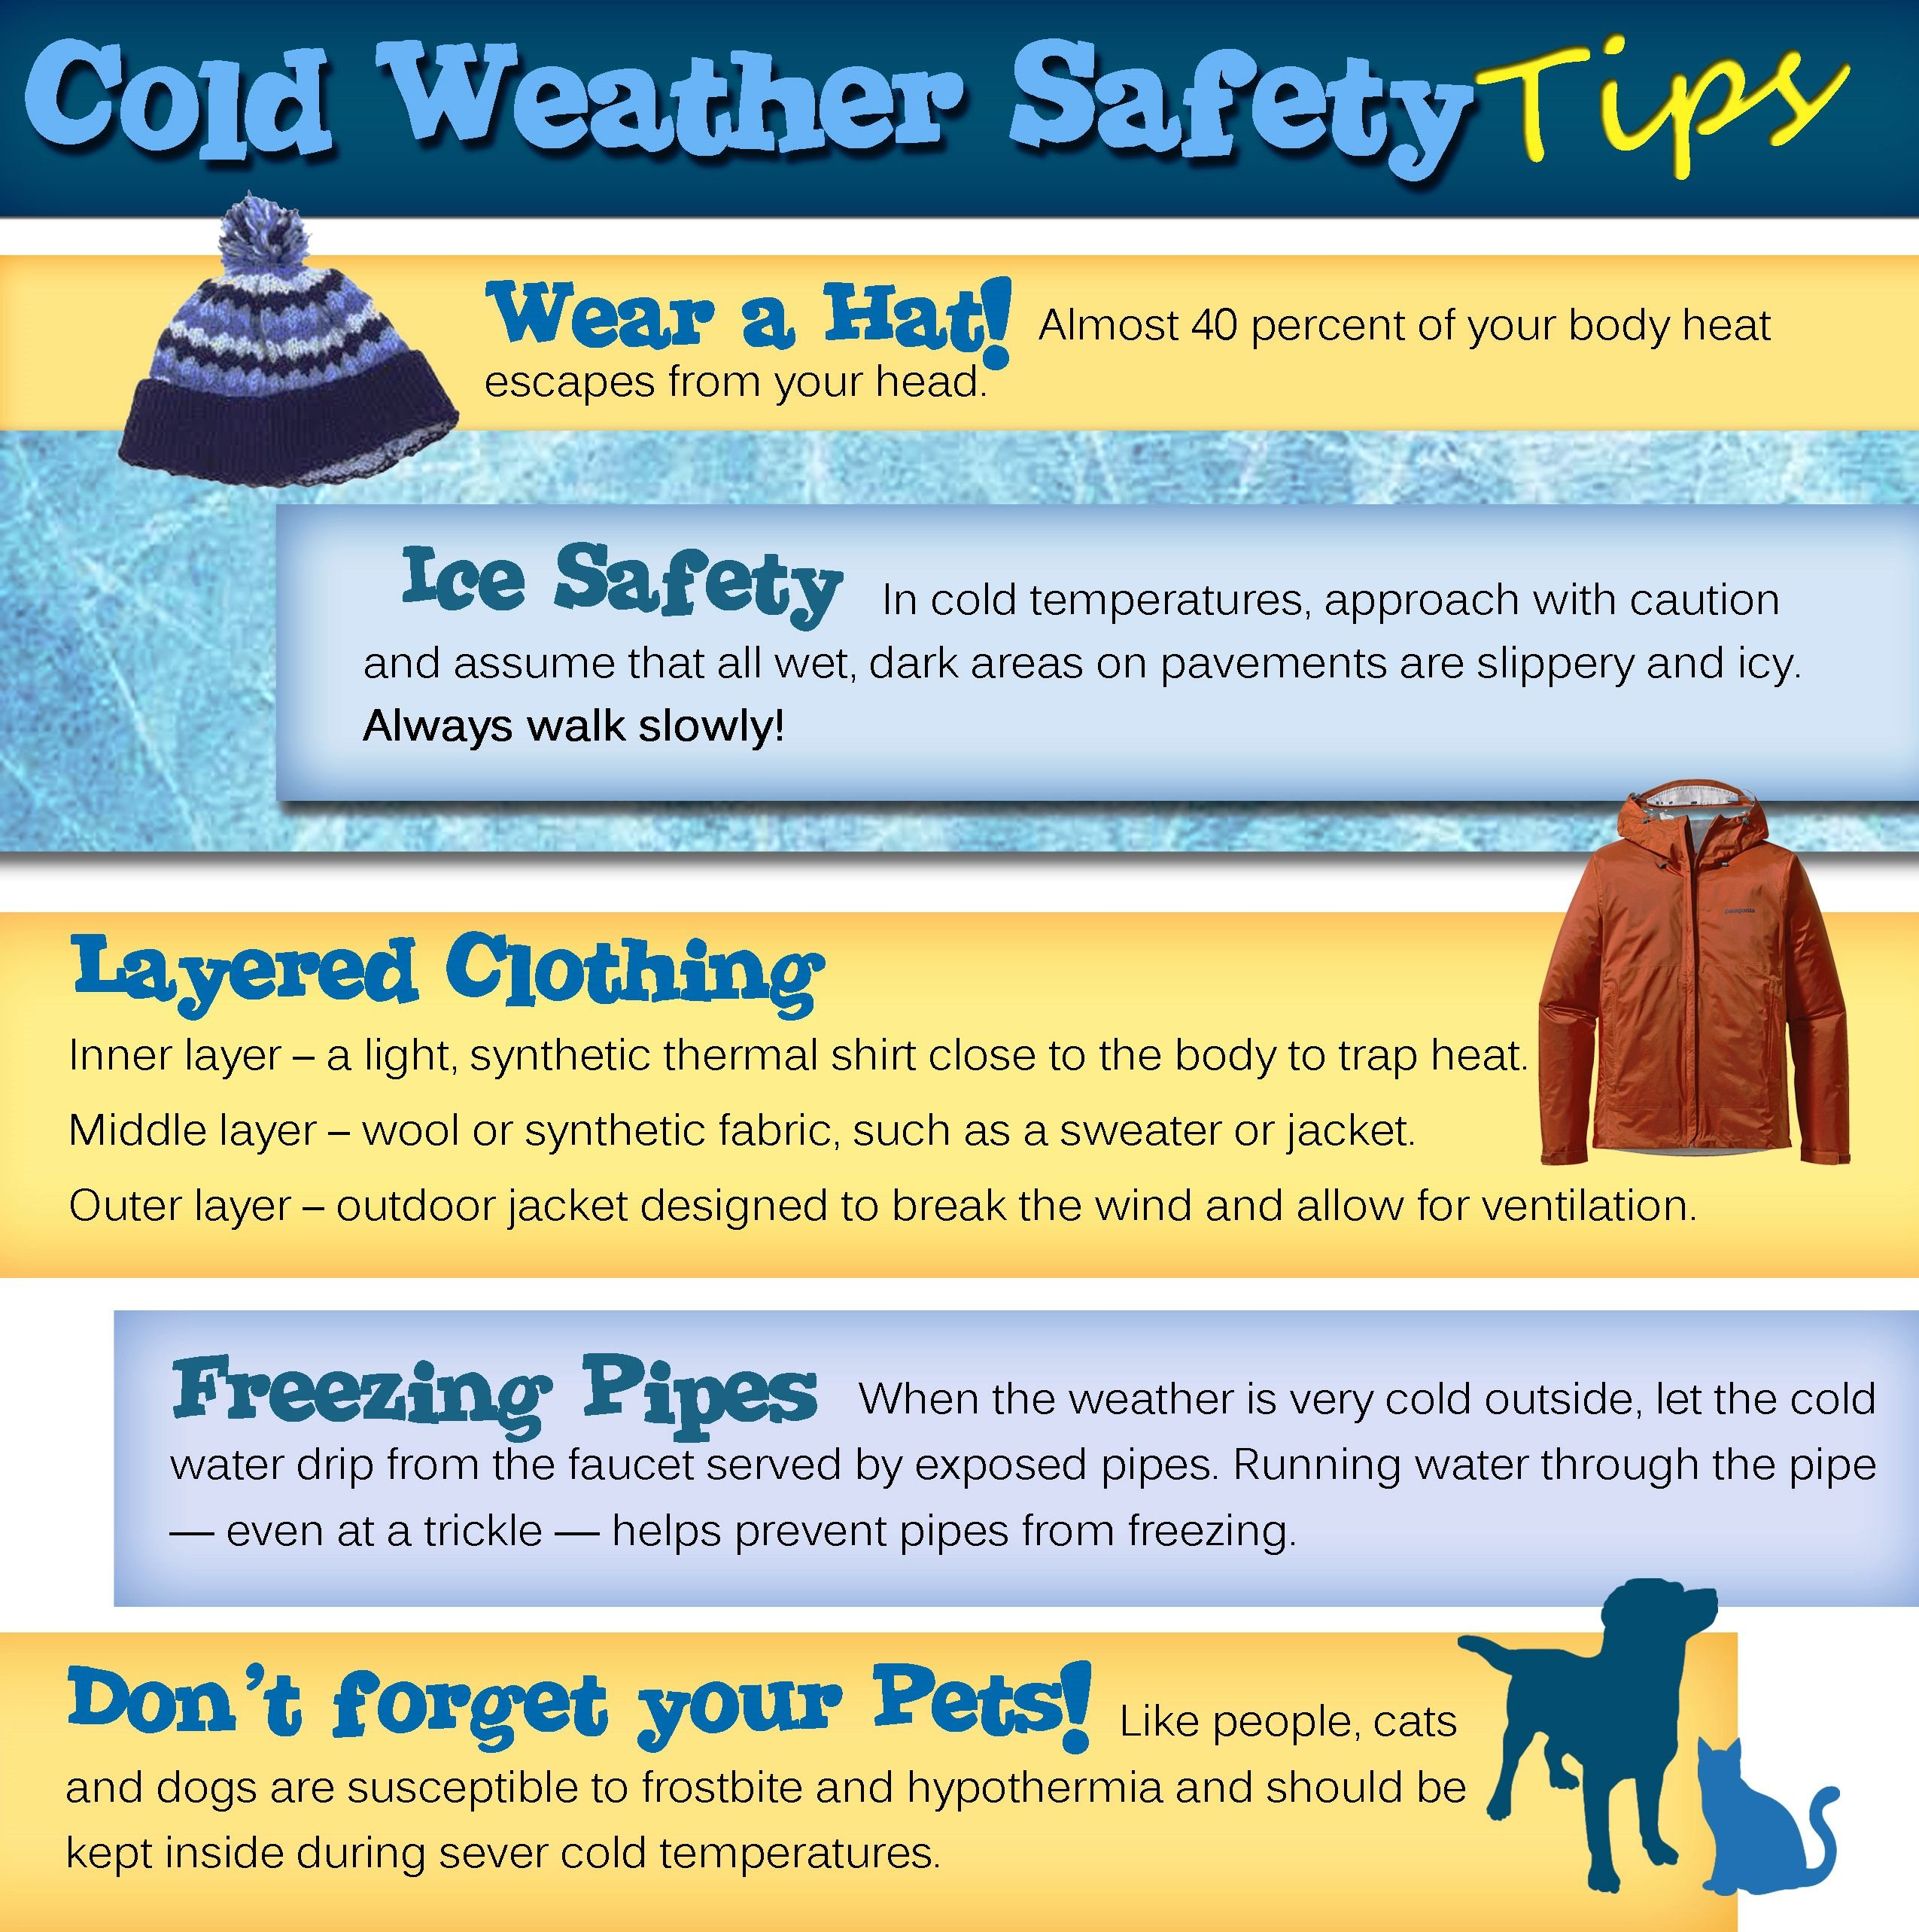 Cold weather safety tips shiftintowinter wellness